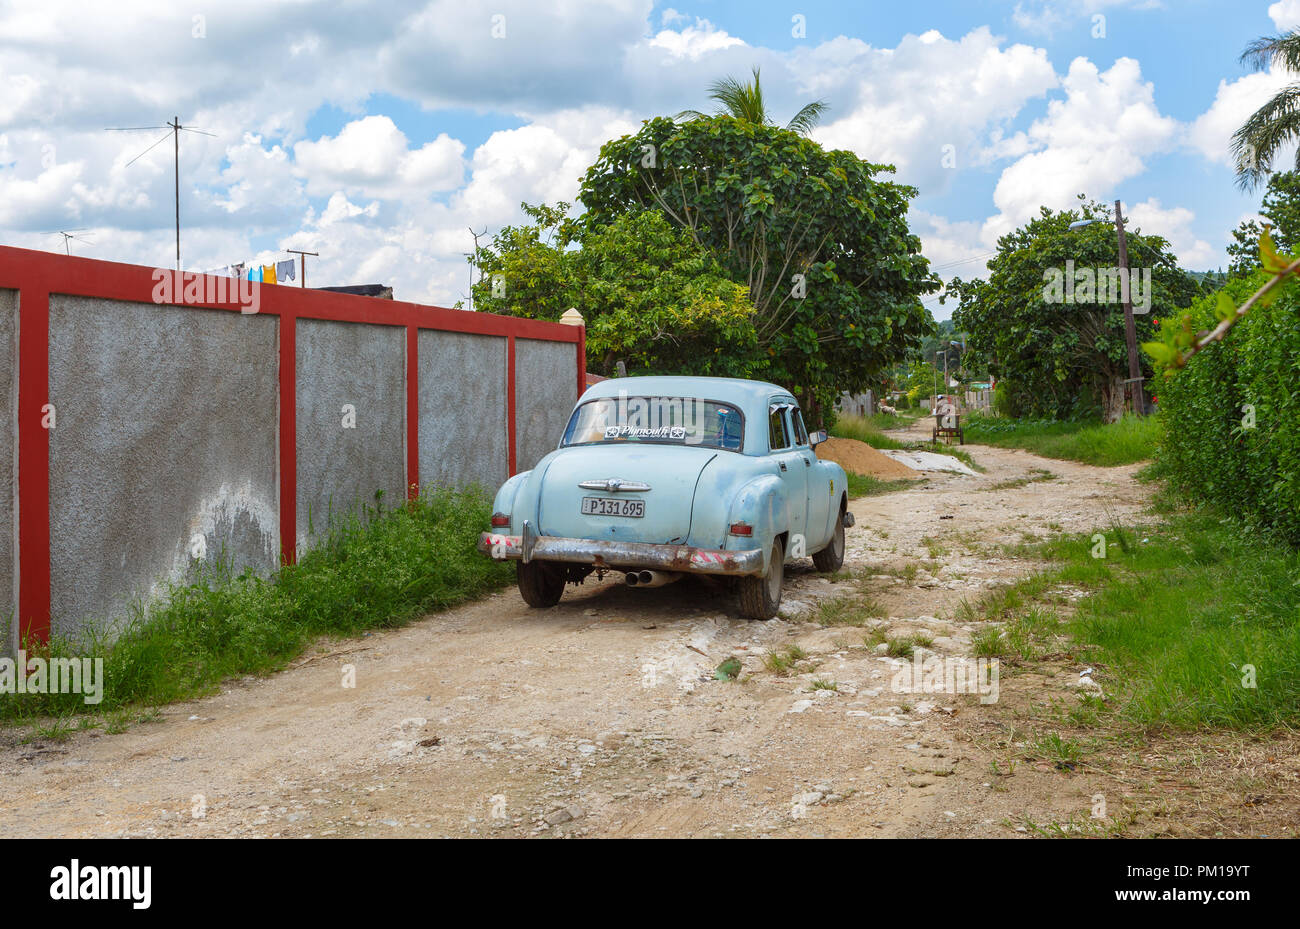 Antique car on a rough road in the province of Mayabeque Cuba on August 25, 2018 - Stock Image